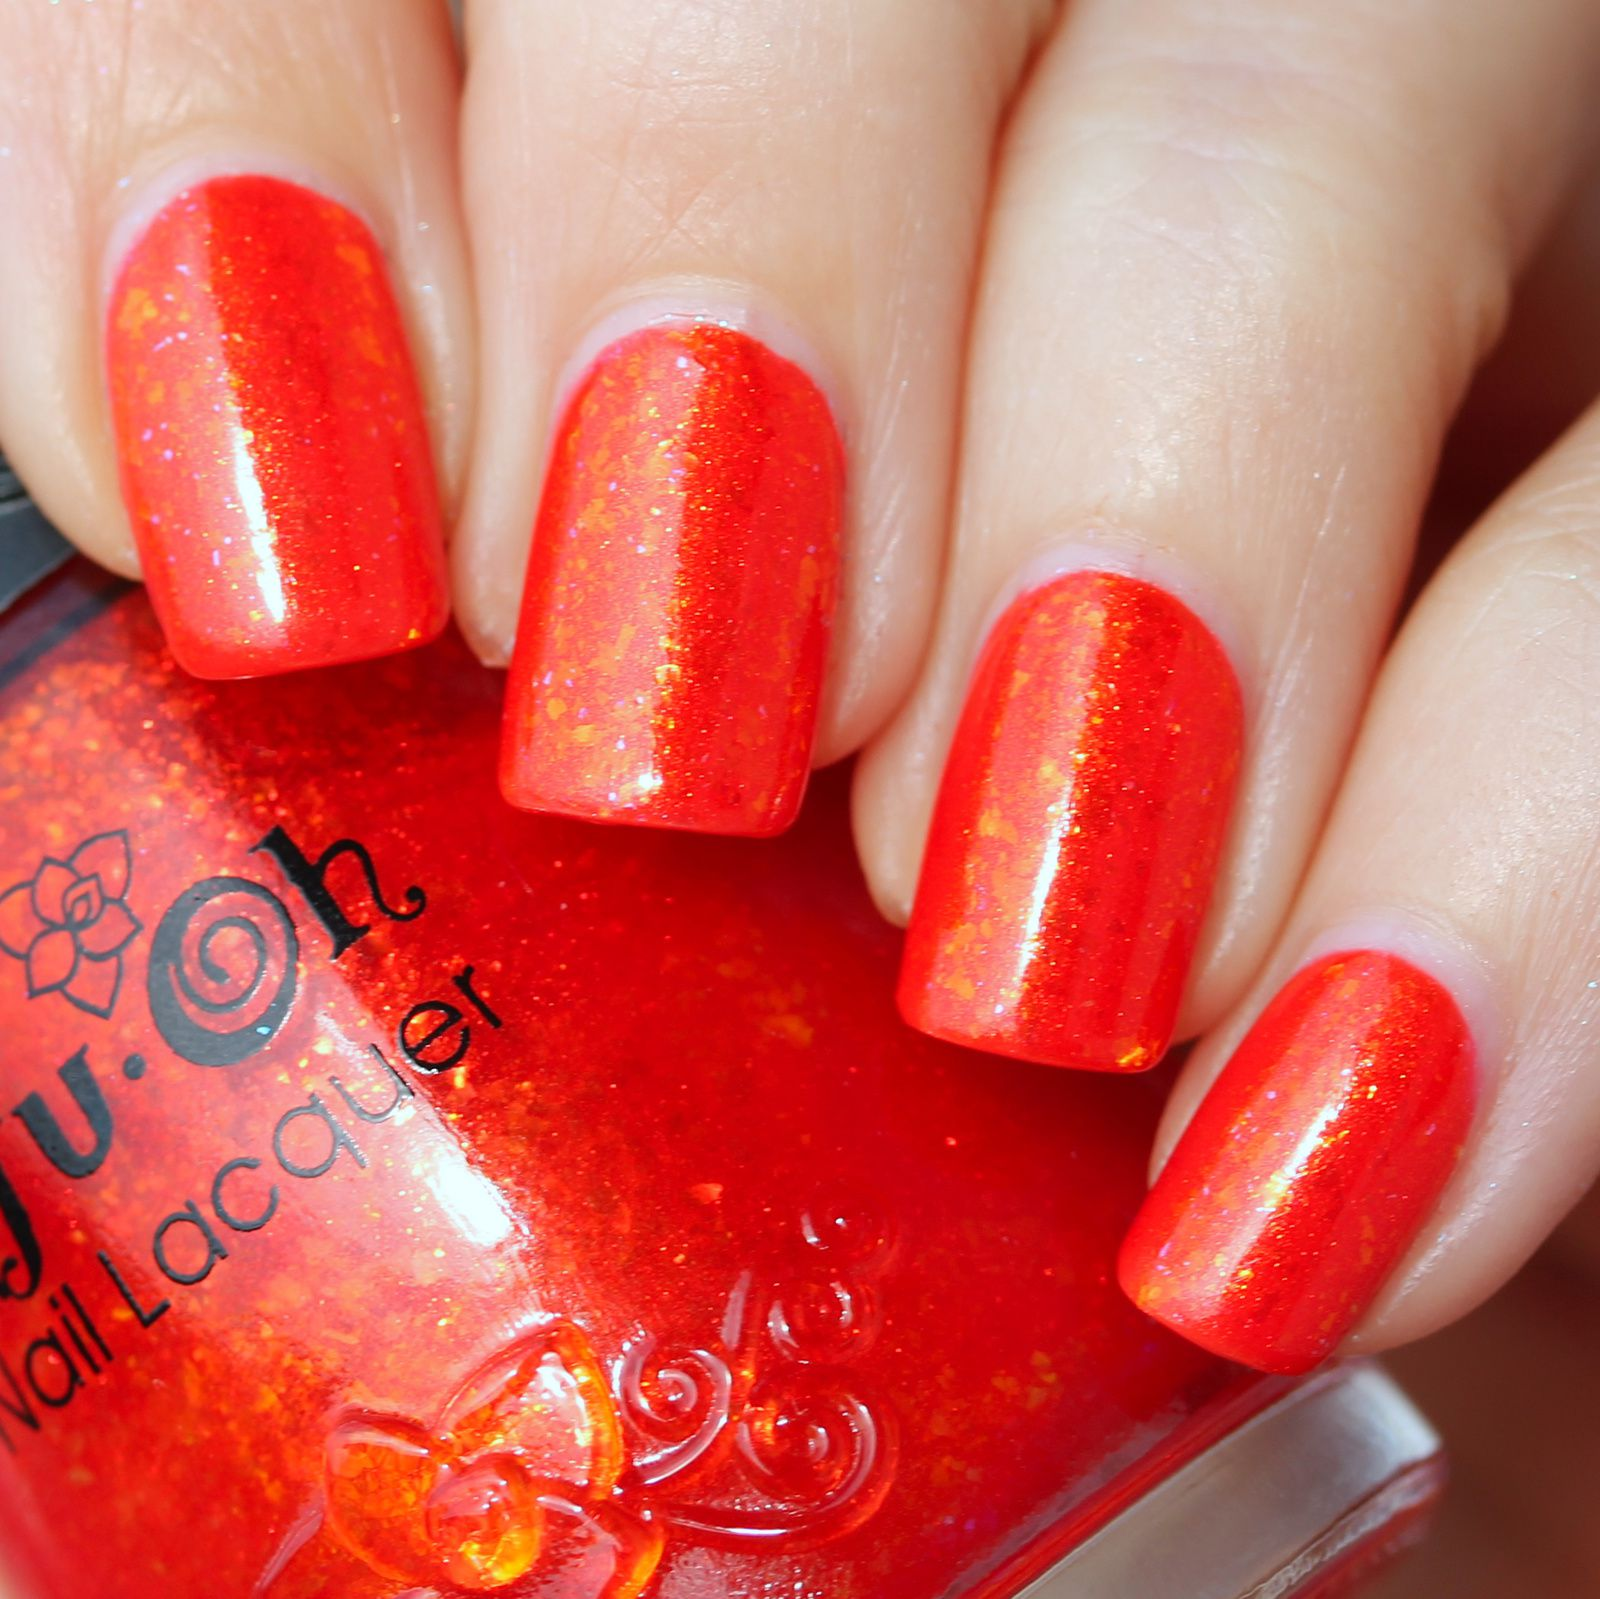 Essie Protein Base Coat / Sinful Colors Coral Riff / Nfu Oh 45 / Sally Hansen Miracle Gel Top Coat